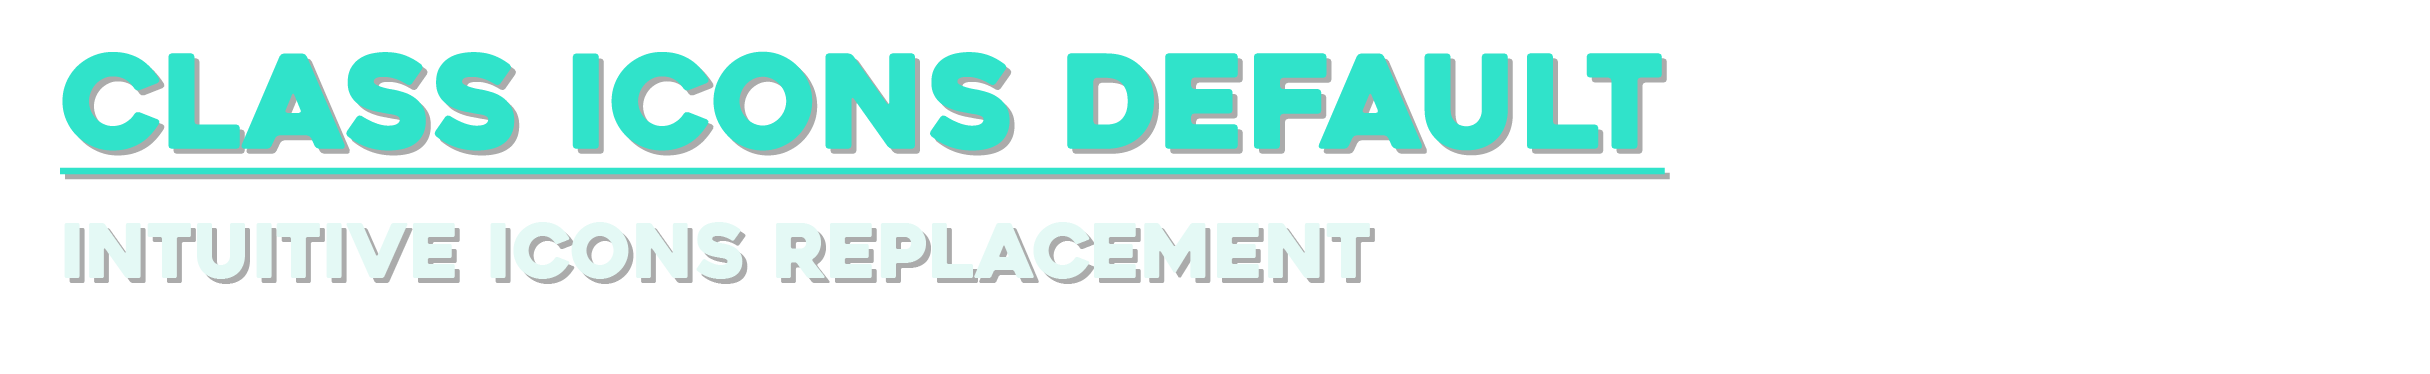 Deep Rock Galactic - Useful & BEST Mods List in Game With Links - Mods - E883383